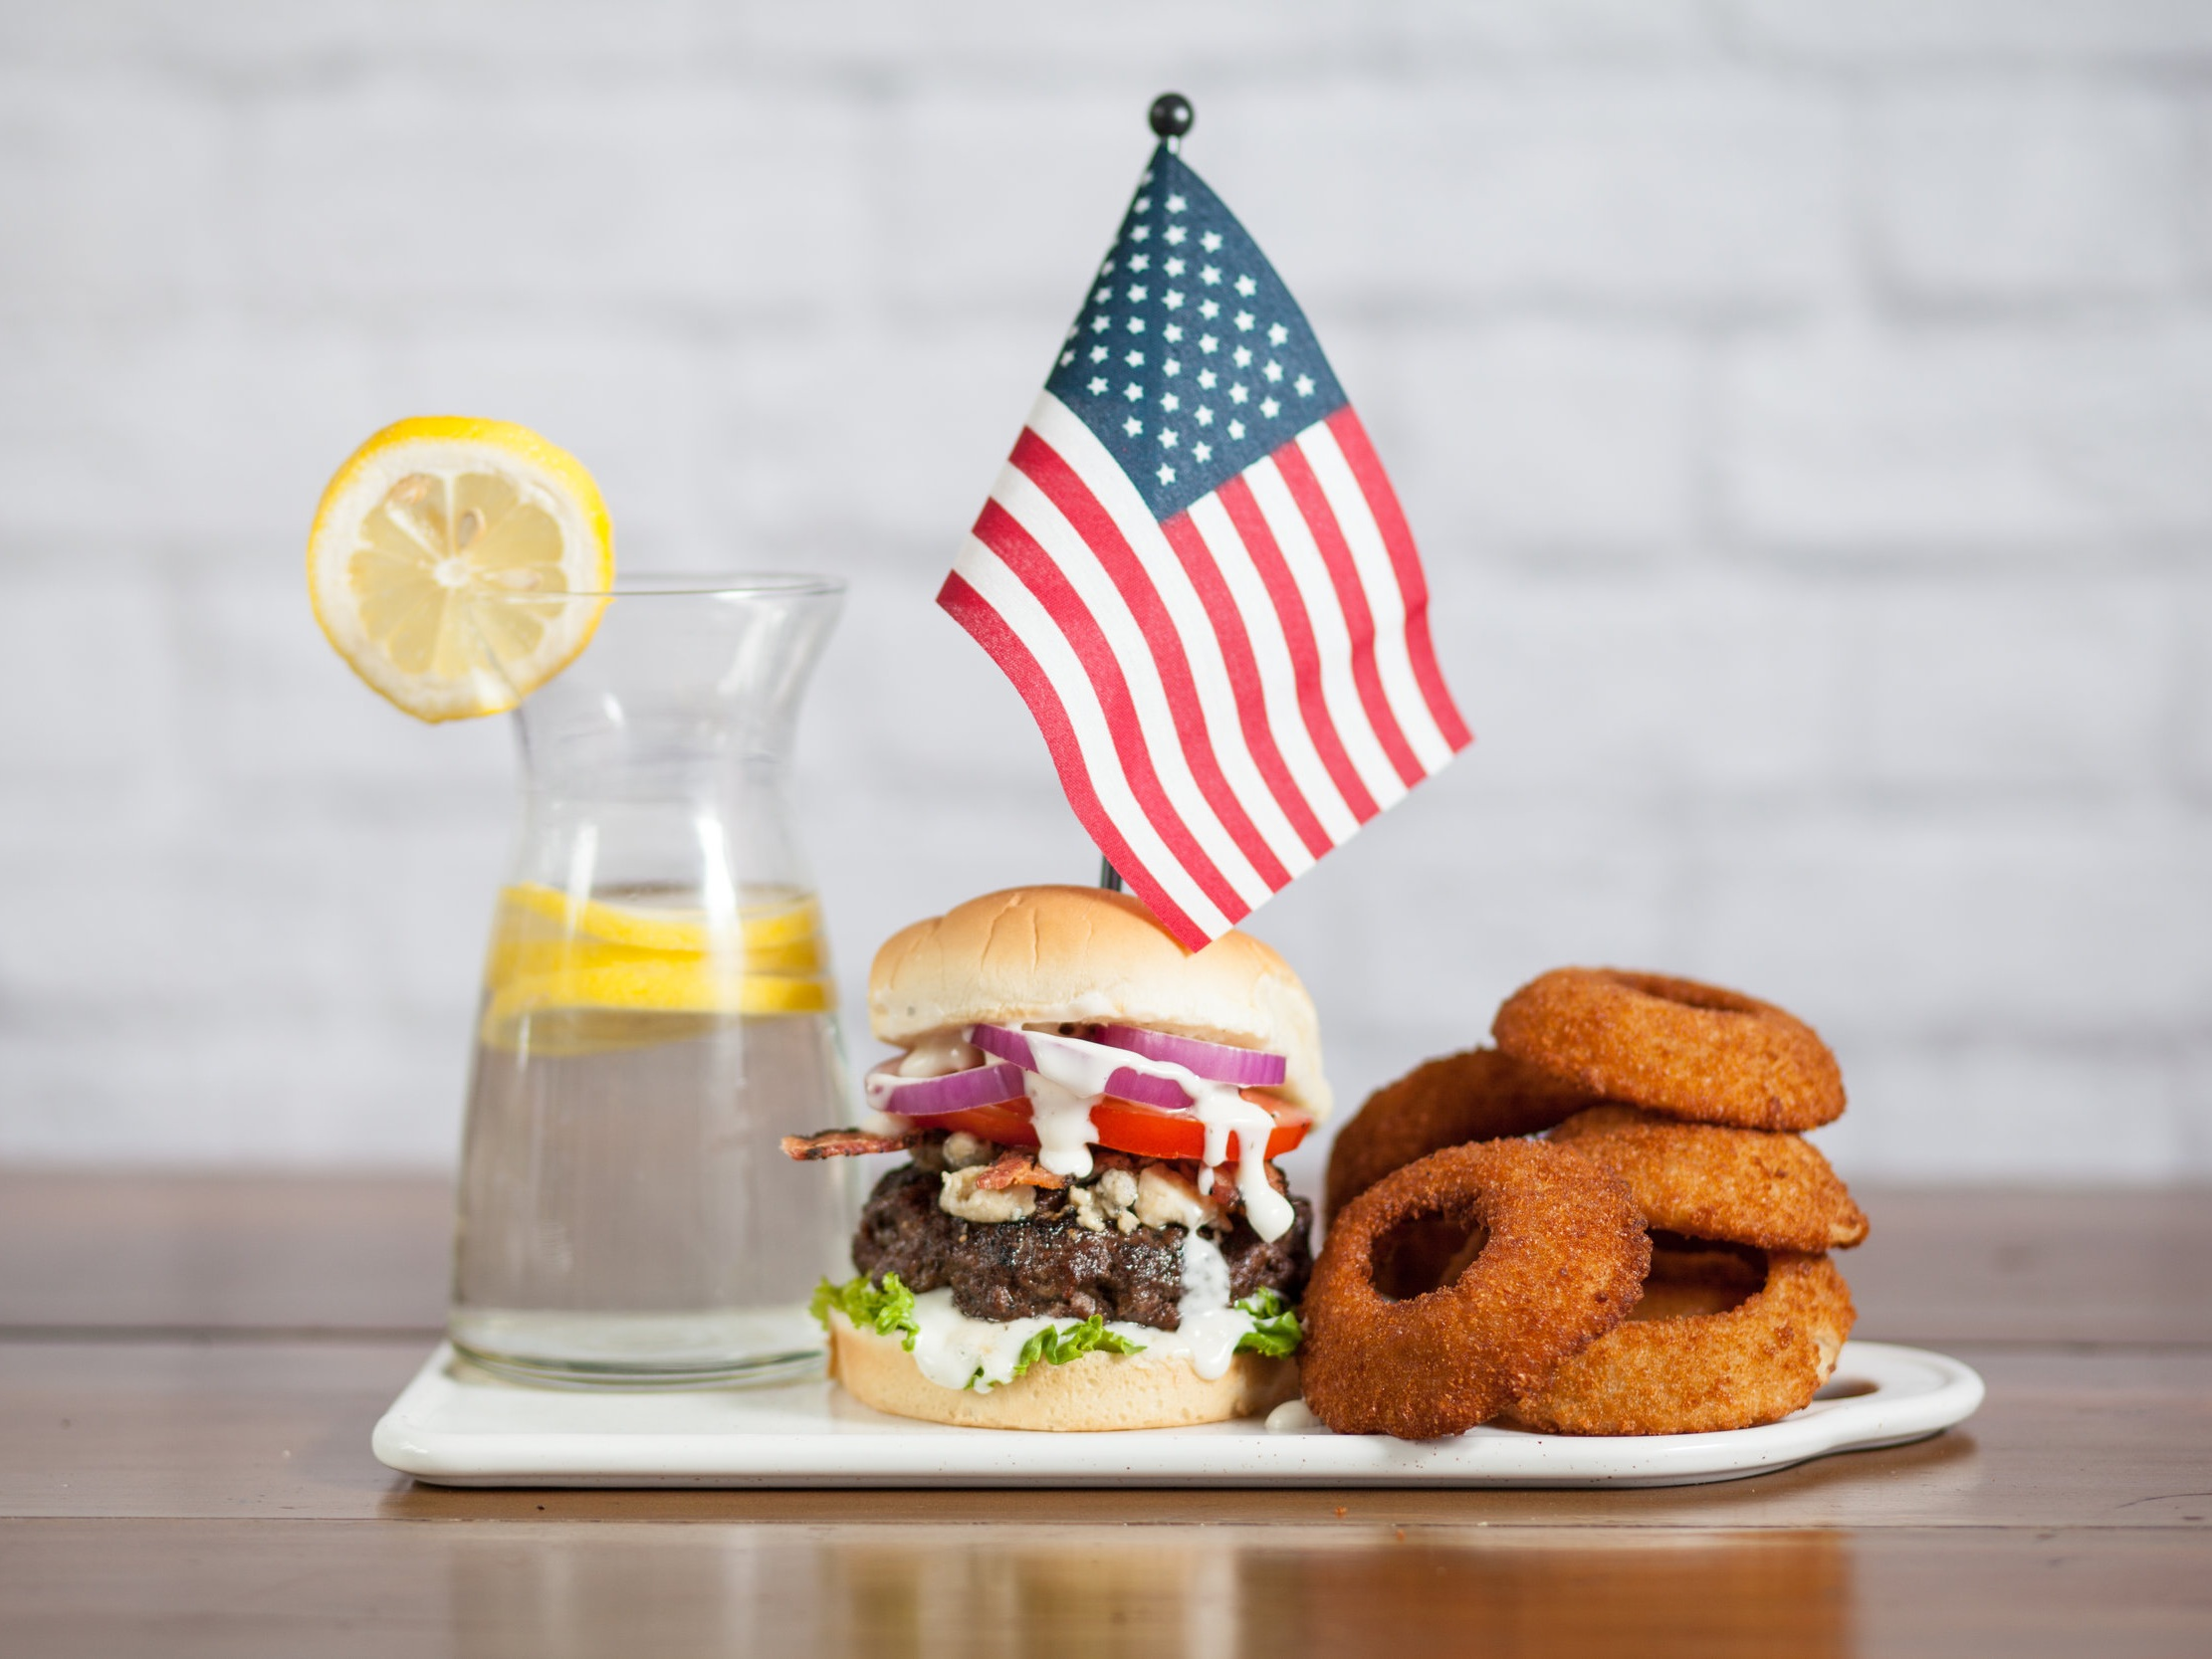 Red, White & Blue Burger - A colorful burger to complement the colors of the holiday. With bacon, ranch and blue cheese creating a savory, juicy and dang ol' good burger. Who knew patriotism could taste so good?